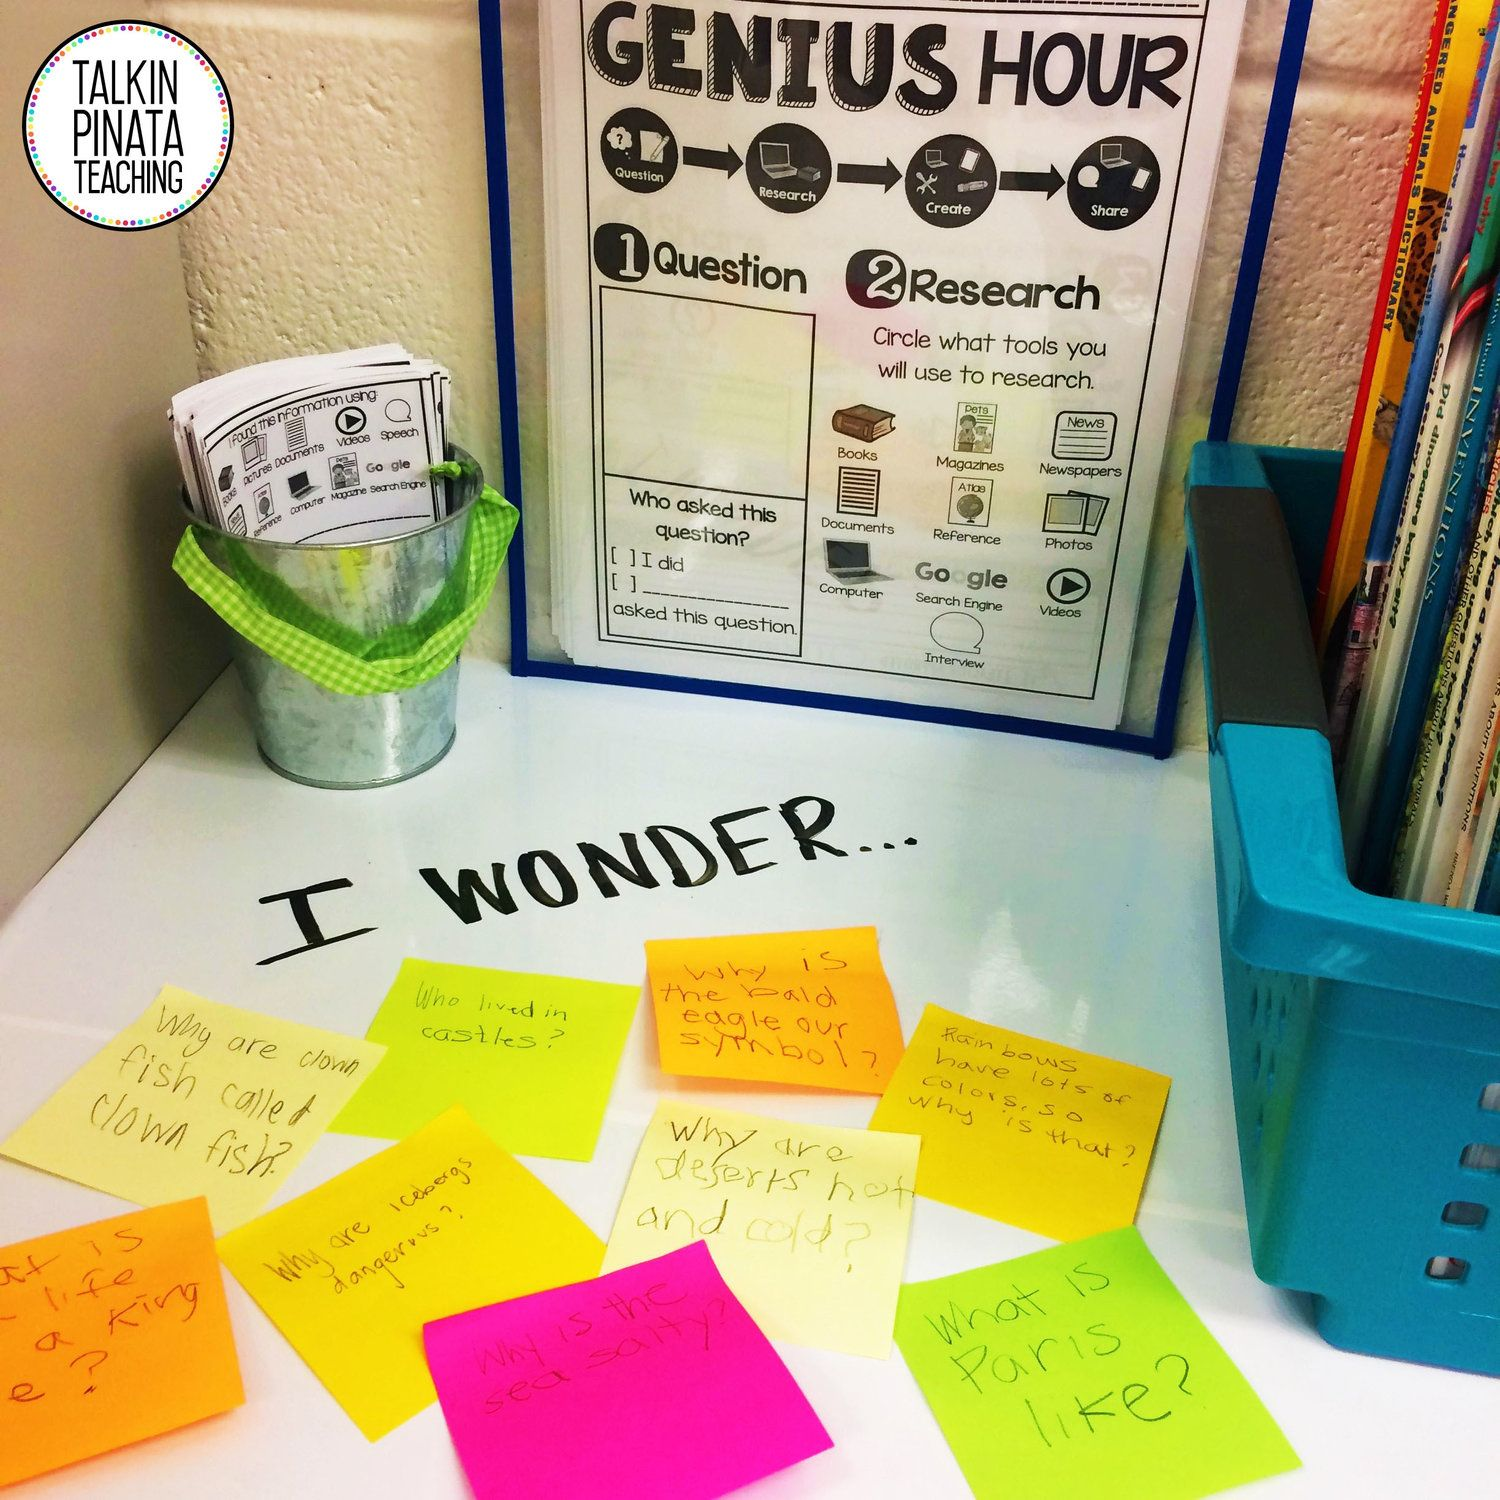 Passion Projects For Primary Students With Images